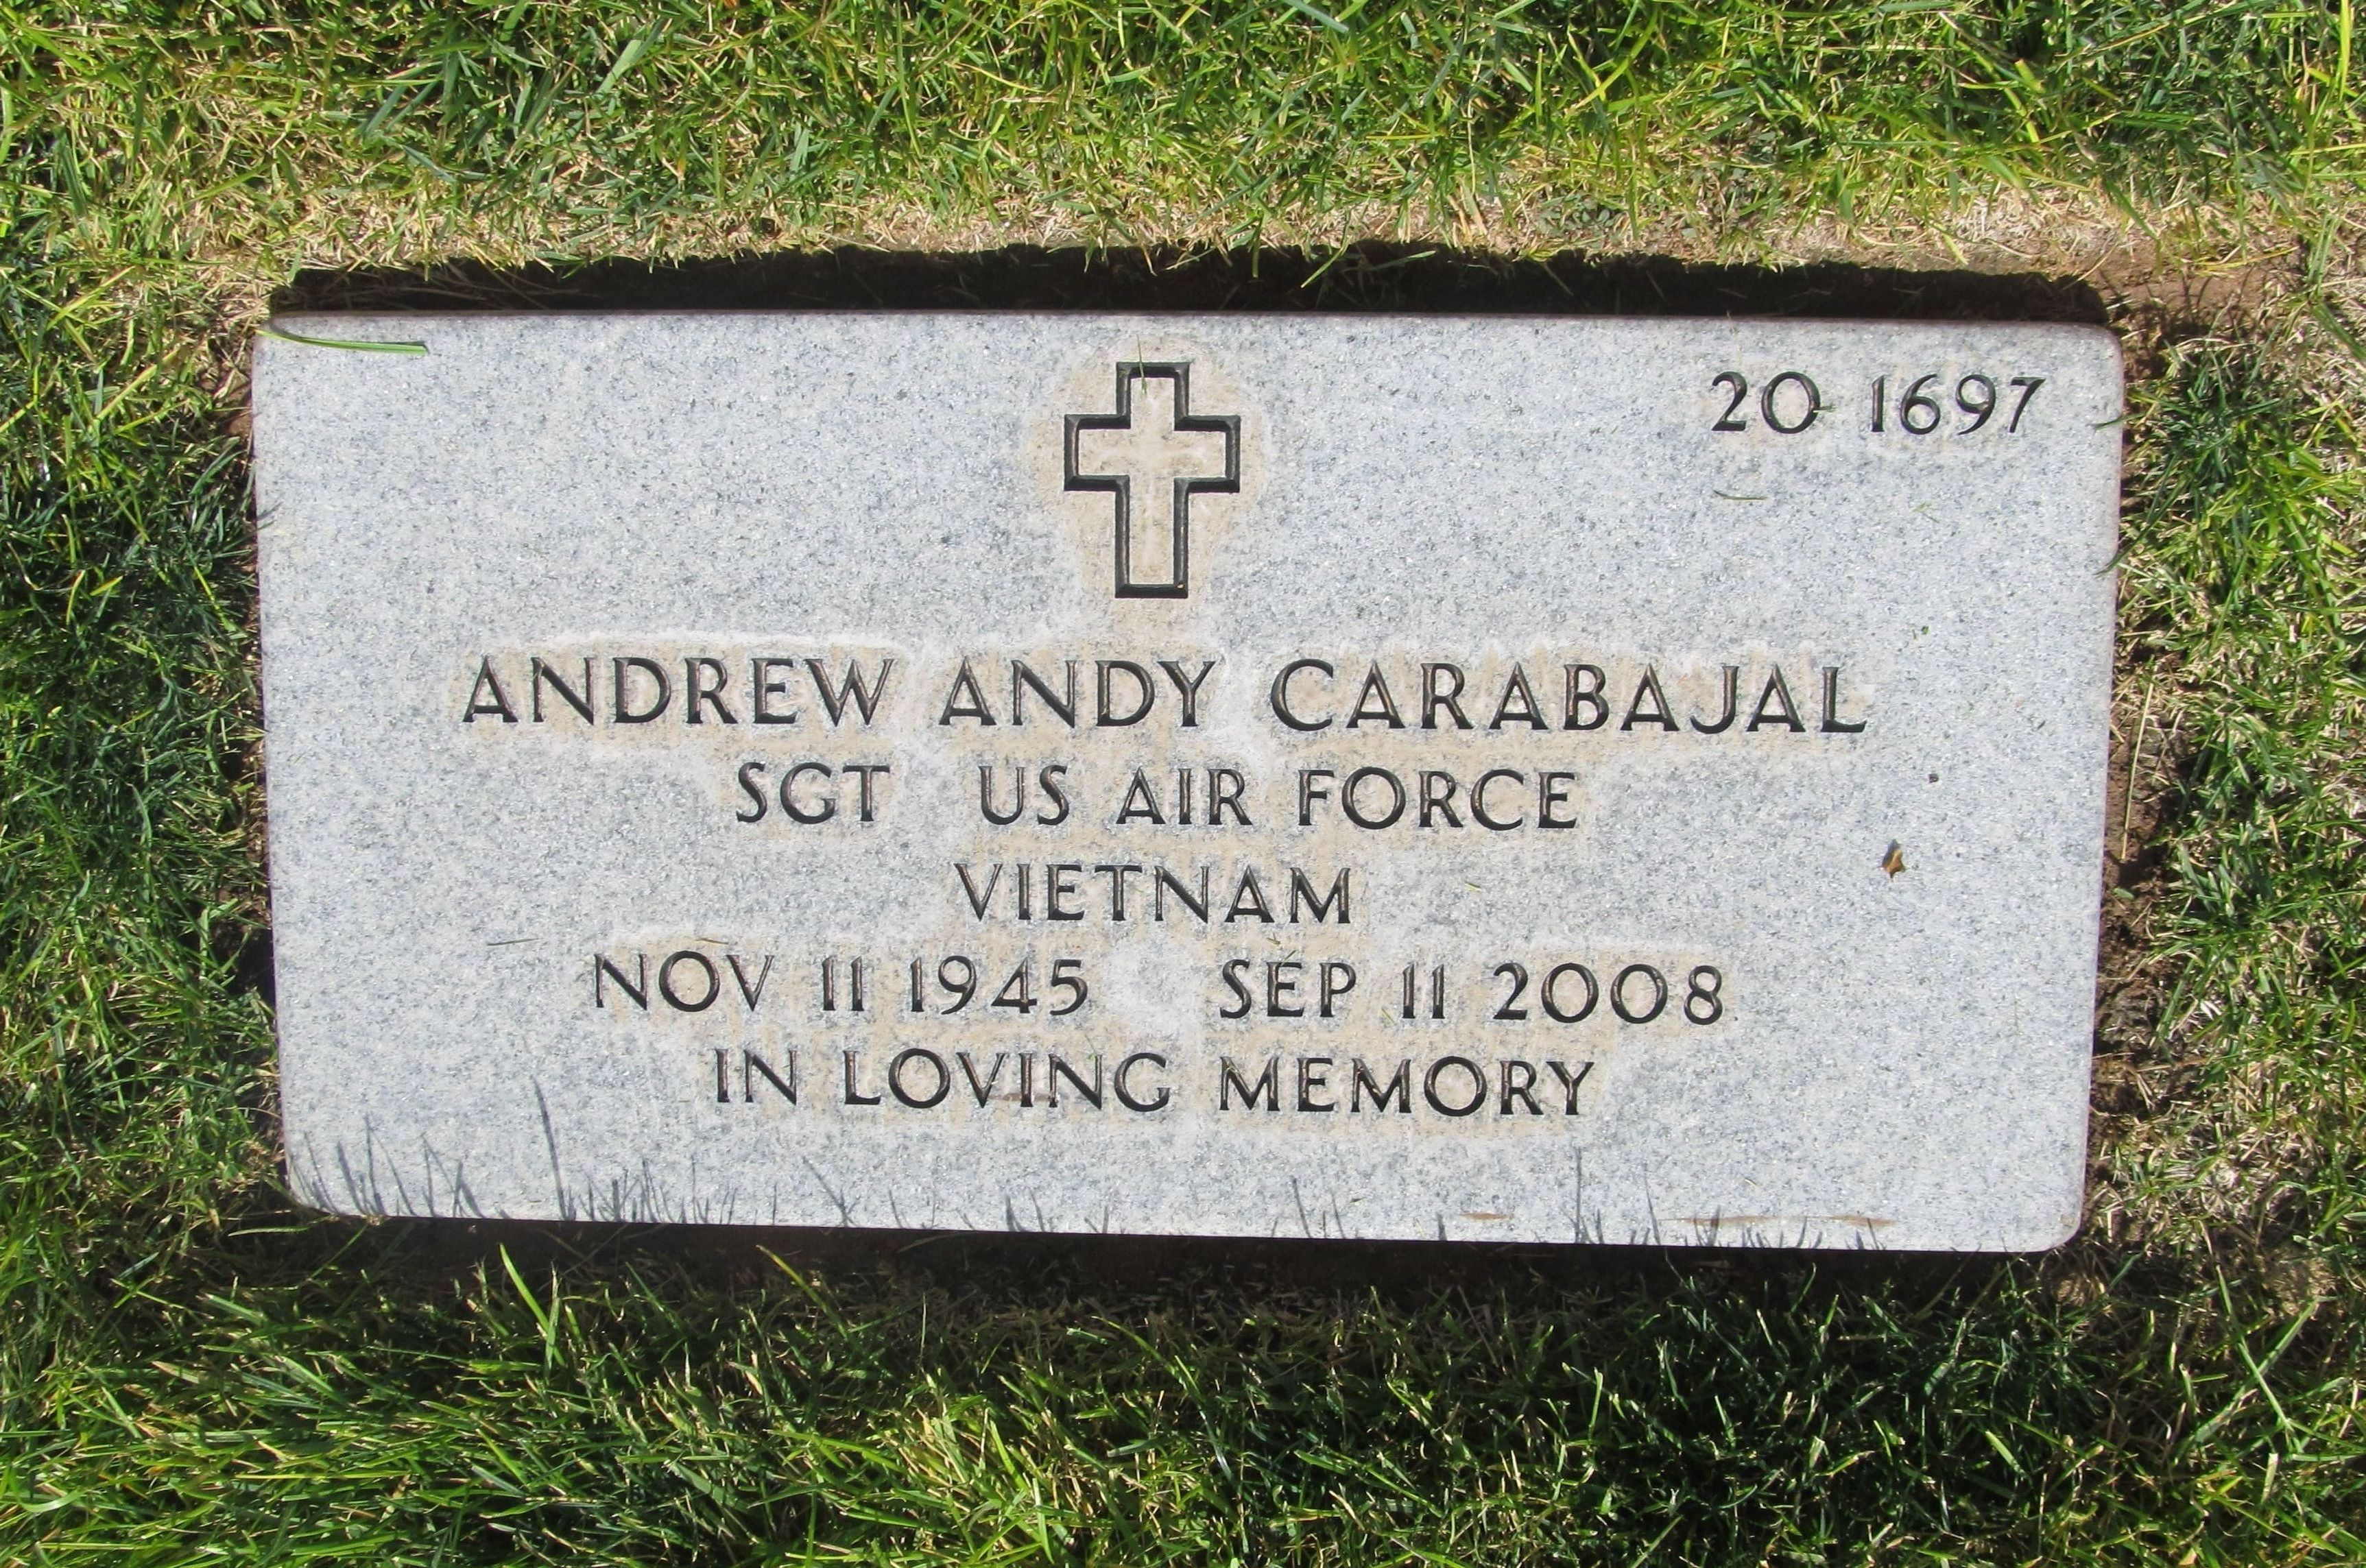 Andrew Andy Carabajal